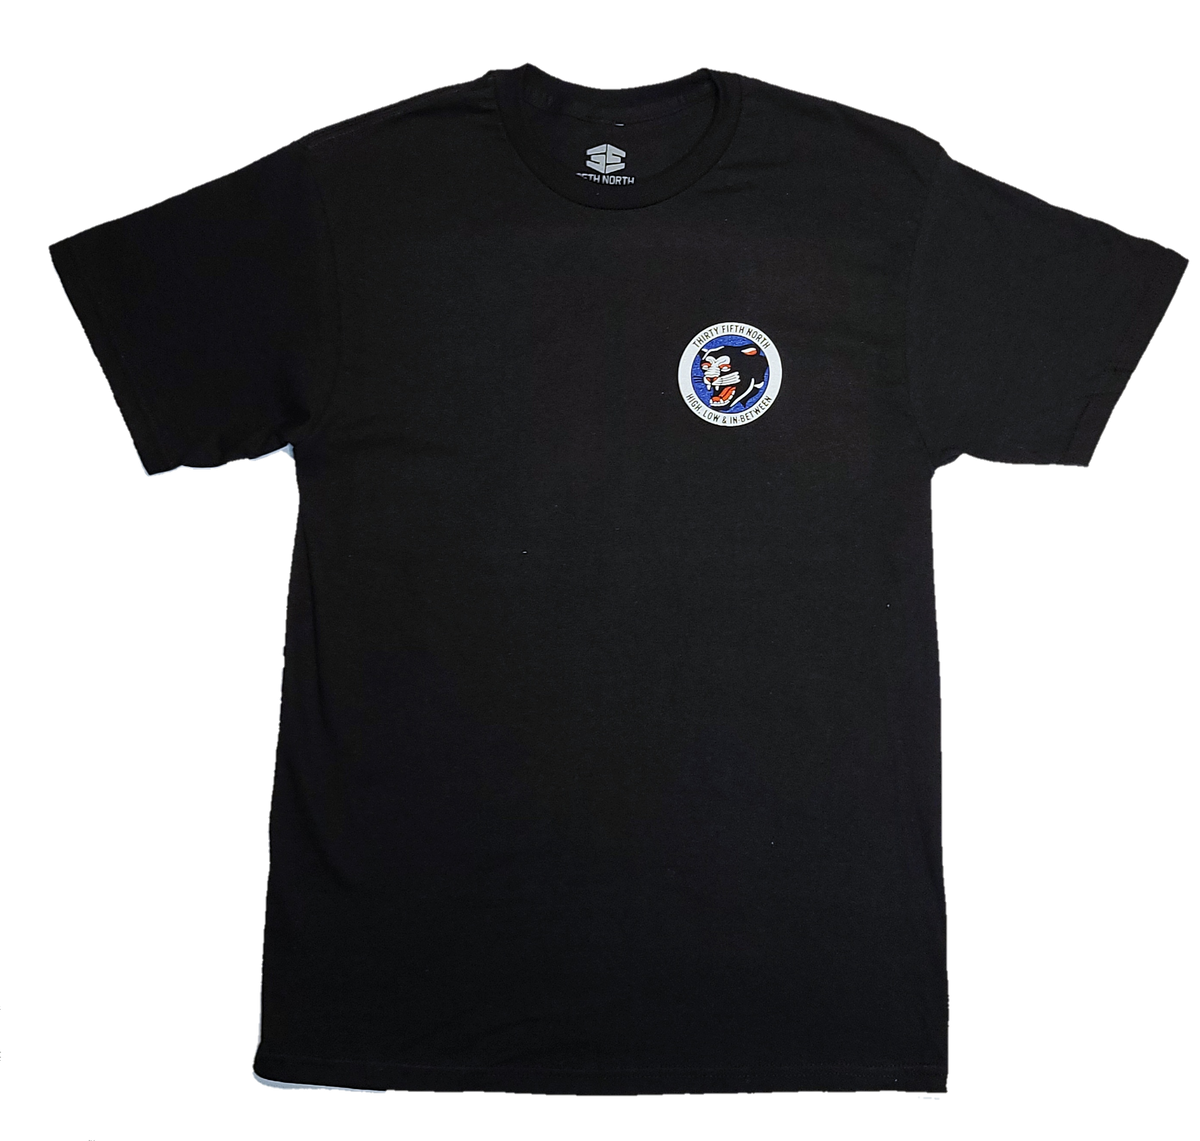 35th North In-Between T-Shirt - Black